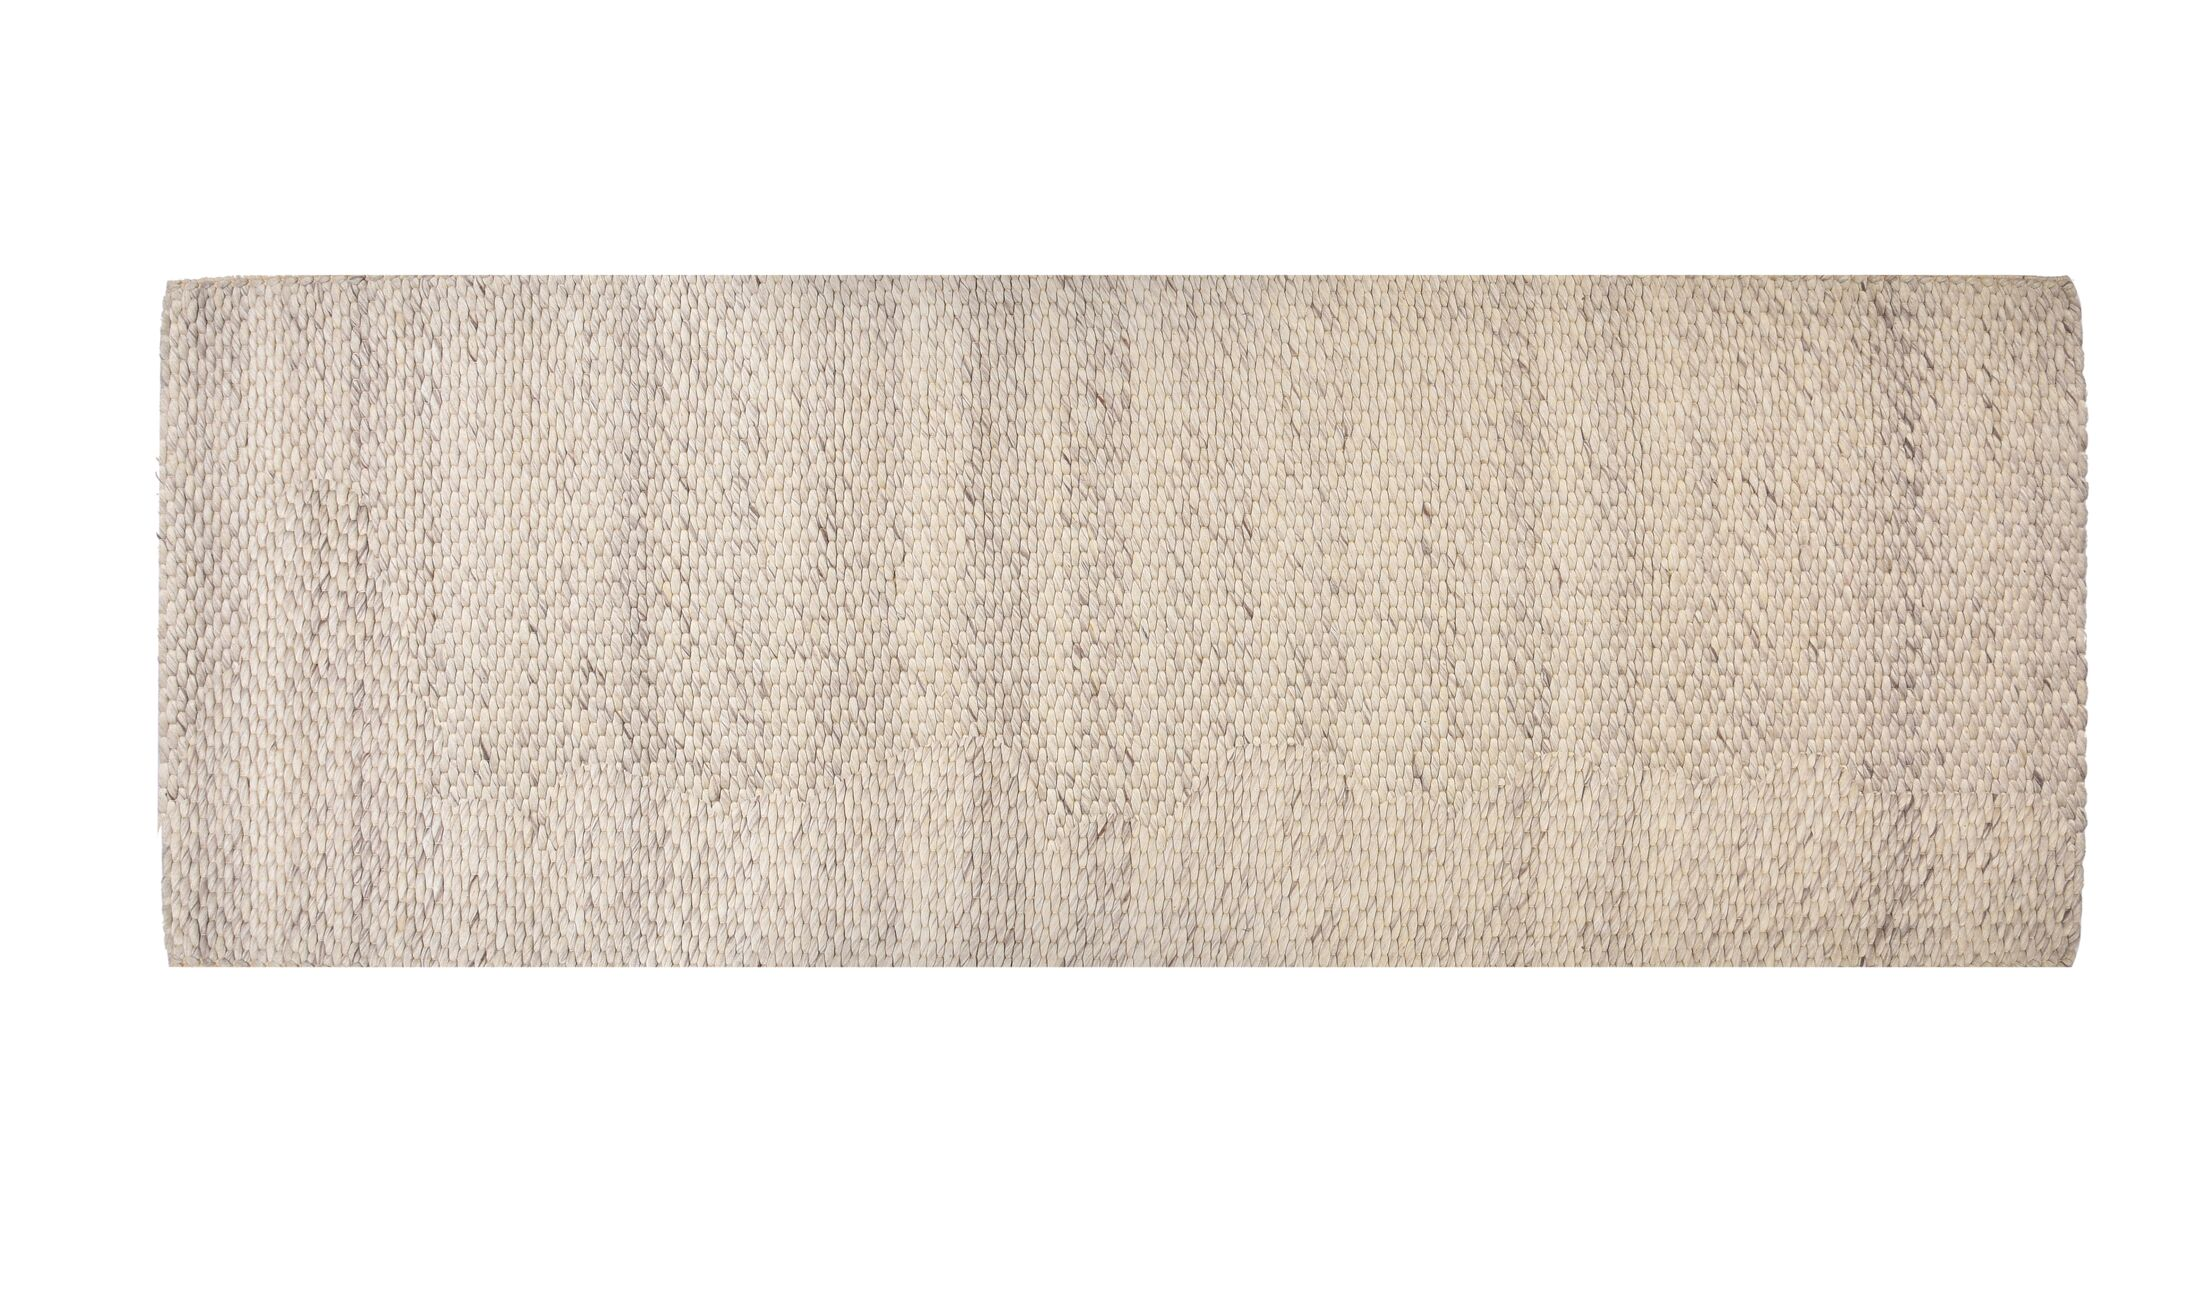 Coto Hand-Woven Wool Birch Area Rug Rug Size: Runner 2' x 6'